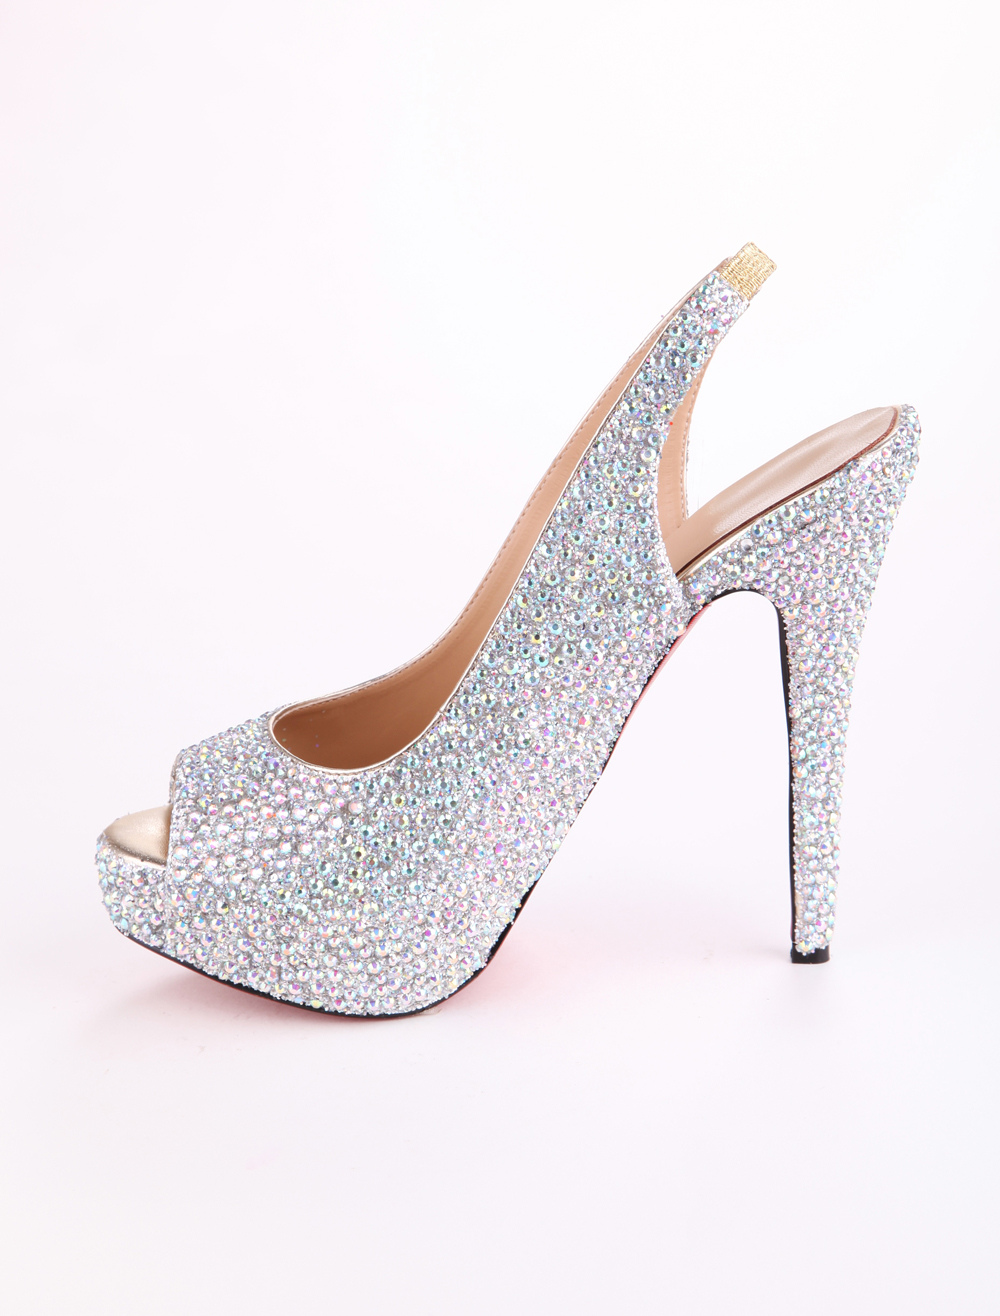 White Peep Toe Slingback Sheepskin Rhinestone Shoes - Milanoo.com